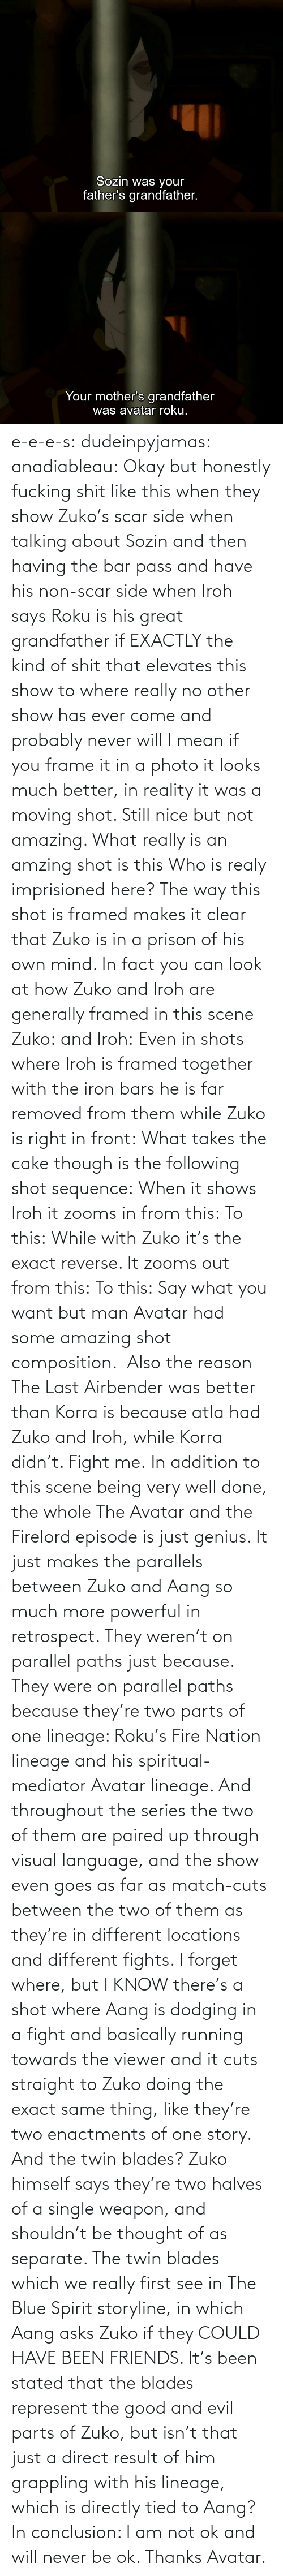 Honestly: e-e-e-s: dudeinpyjamas:   anadiableau: Okay but honestly fucking shit like this when they show Zuko's scar side when talking about Sozin and then having the bar pass and have his non-scar side when Iroh says Roku is his great grandfather if EXACTLY the kind of shit that elevates this show to where really no other show has ever come and probably never will I mean if you frame it in a photo it looks much better, in reality it was a moving shot. Still nice but not amazing. What really is an amzing shot is this Who is realy imprisioned here? The way this shot is framed makes it clear that Zuko is in a prison of his own mind. In fact you can look at how Zuko and Iroh are generally framed in this scene Zuko: and Iroh: Even in shots where Iroh is framed together with the iron bars he is far removed from them while Zuko is right in front:  What takes the cake though is the following shot sequence: When it shows Iroh it zooms in from this: To this: While with Zuko it's the exact reverse. It zooms out from this: To this: Say what you want but man Avatar had some amazing shot composition.   Also the reason The Last Airbender was better than Korra is because atla had Zuko and Iroh, while Korra didn't. Fight me.    In addition to this scene being very well done, the whole The Avatar and the Firelord episode is just genius.  It just makes the parallels between Zuko and Aang so much more powerful in retrospect.  They weren't on parallel paths just because.  They were on parallel paths because they're two parts of one lineage: Roku's Fire Nation lineage and his spiritual-mediator Avatar lineage.  And throughout the series the two of them are paired up through visual language, and the show even goes as far as match-cuts between the two of them as they're in different locations and different fights.  I forget where, but I KNOW there's a shot where Aang is dodging in a fight and basically running towards the viewer and it cuts straight to Zuko doing the exact same thing, like they're two enactments of one story.   And the twin blades?  Zuko himself says they're two halves of a single weapon, and shouldn't be thought of as separate.  The twin blades which we really first see in The Blue Spirit storyline, in which Aang asks Zuko if they COULD HAVE BEEN FRIENDS.  It's been stated that the blades represent the good and evil parts of Zuko, but isn't that just a direct result of him grappling with his lineage, which is directly tied to Aang? In conclusion: I am not ok and will never be ok.  Thanks Avatar.